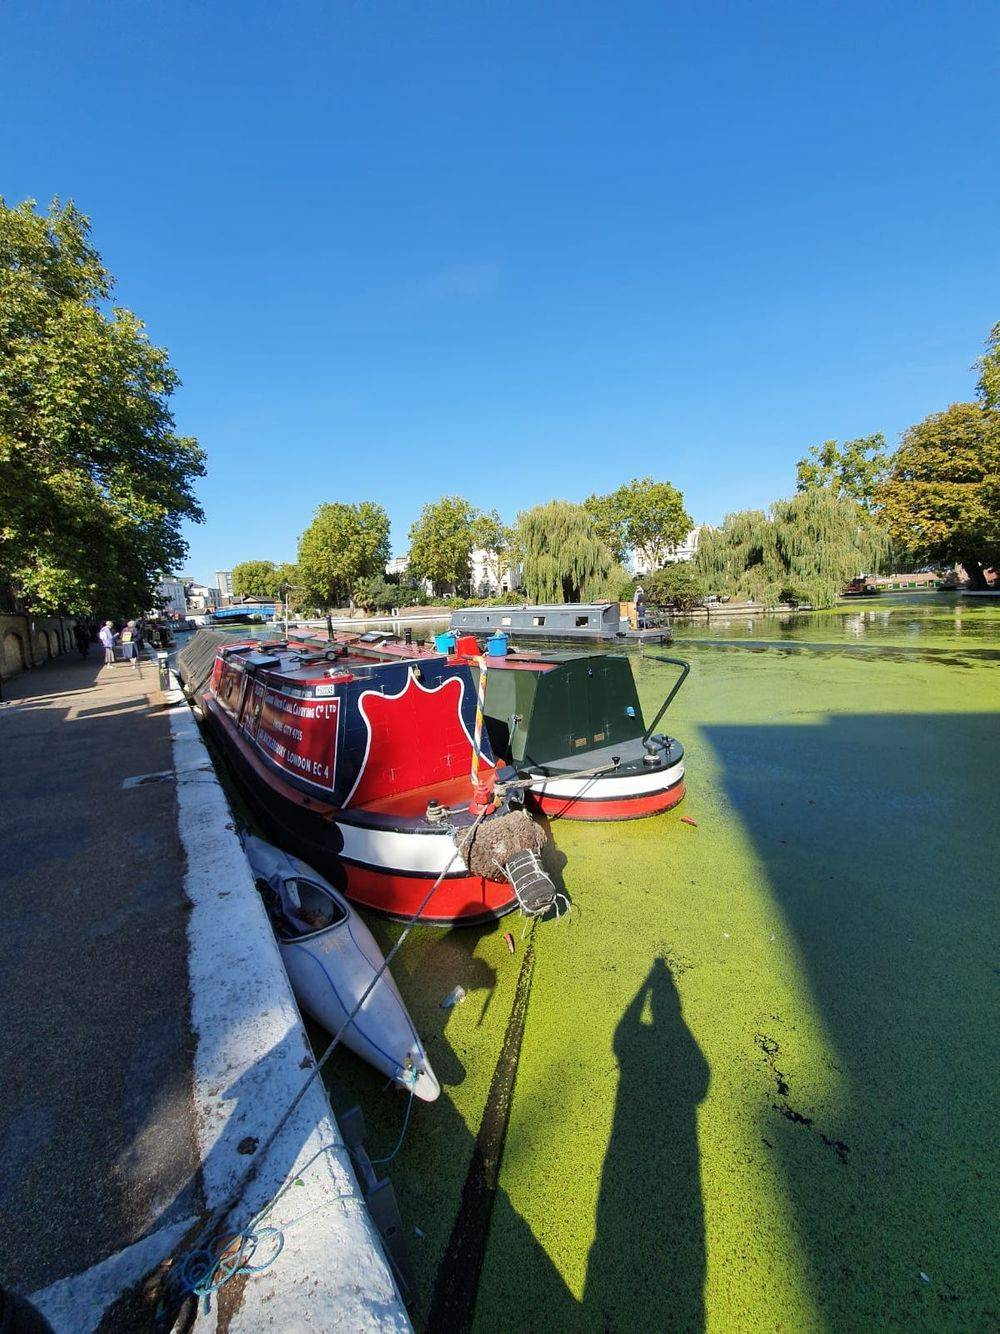 grand union canal london, regent's canal london  ,canal walks in london ,family friendly walks in london ,romantic walks in london ,romantic london ,robert browning, browning's pool ,little venice london, british & far east traders